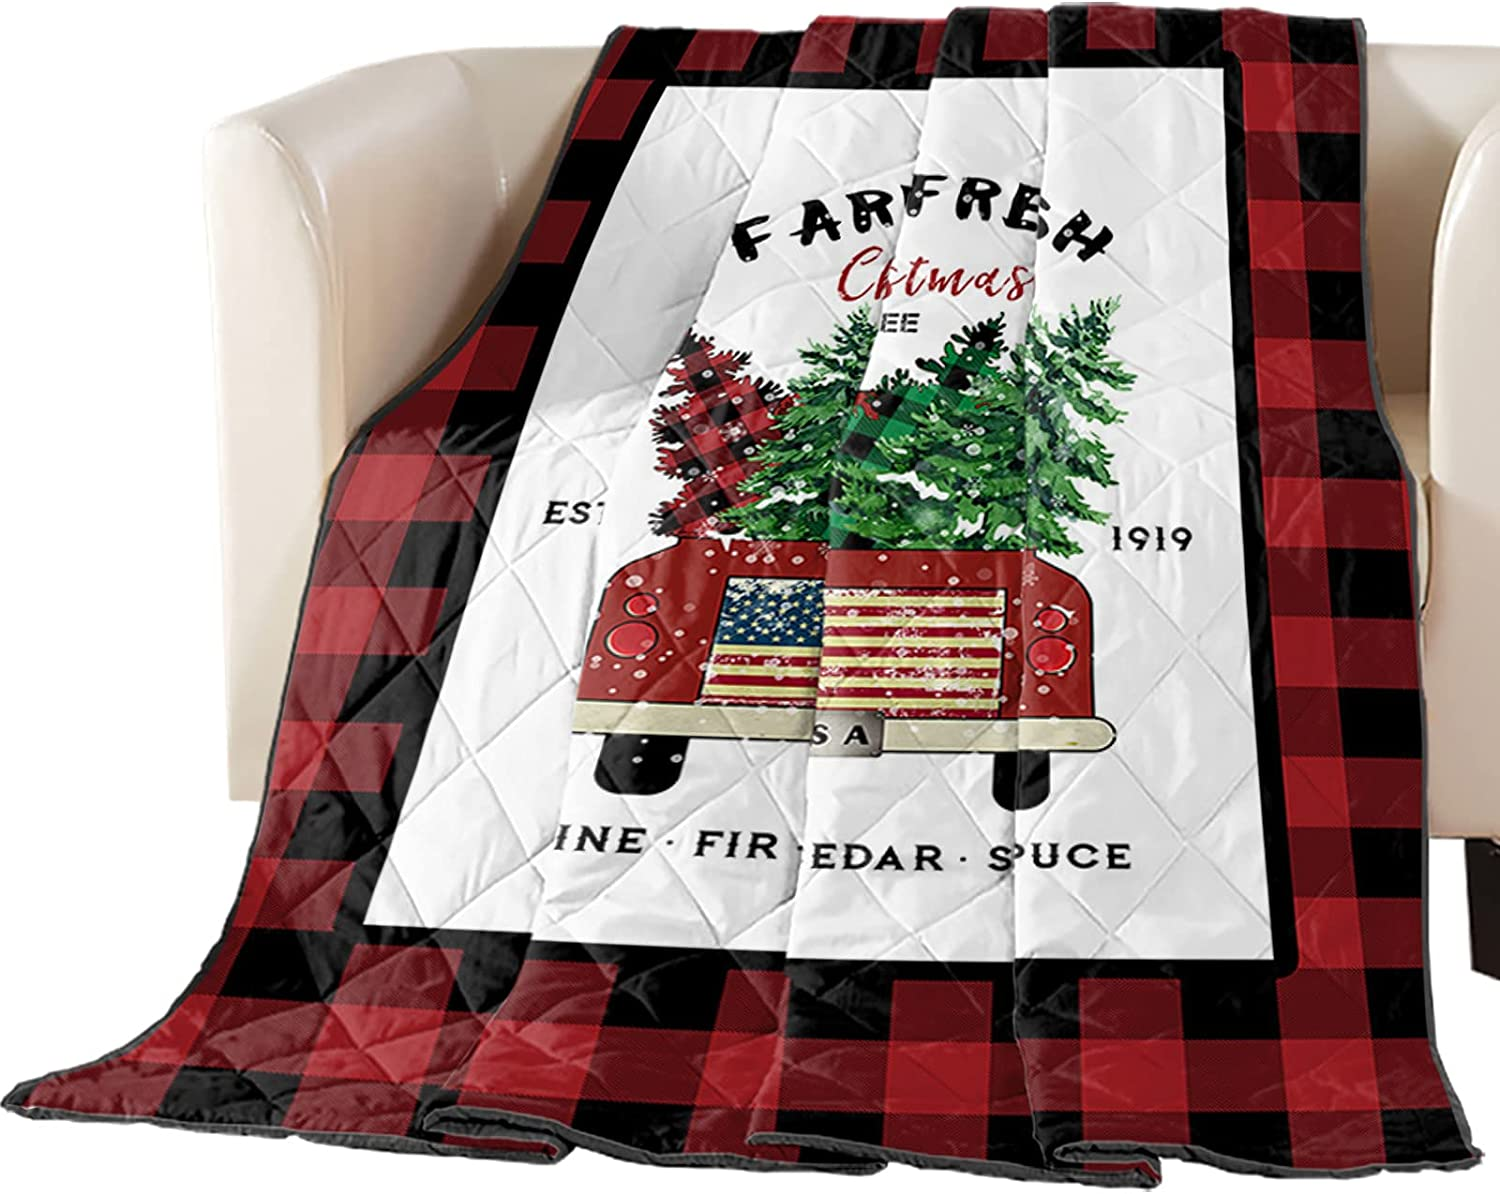 Premium Coverlet Diamond Stitched Quilted Truck Retro Ranking TOP15 Jacksonville Mall 82x85in wi